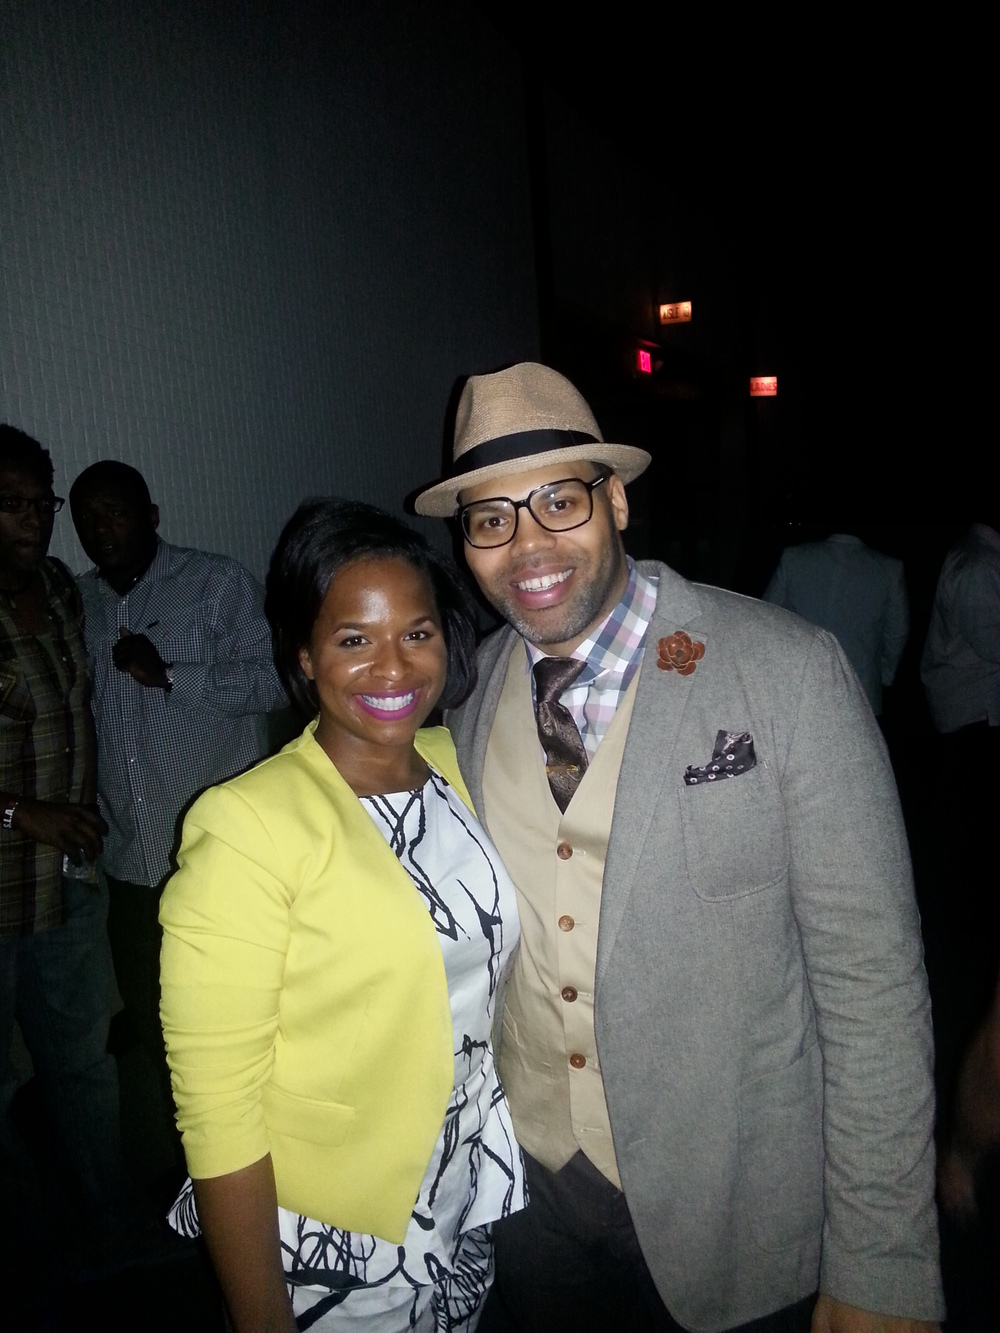 Eric Roberson and I after his performance at the Houston Arena Theater